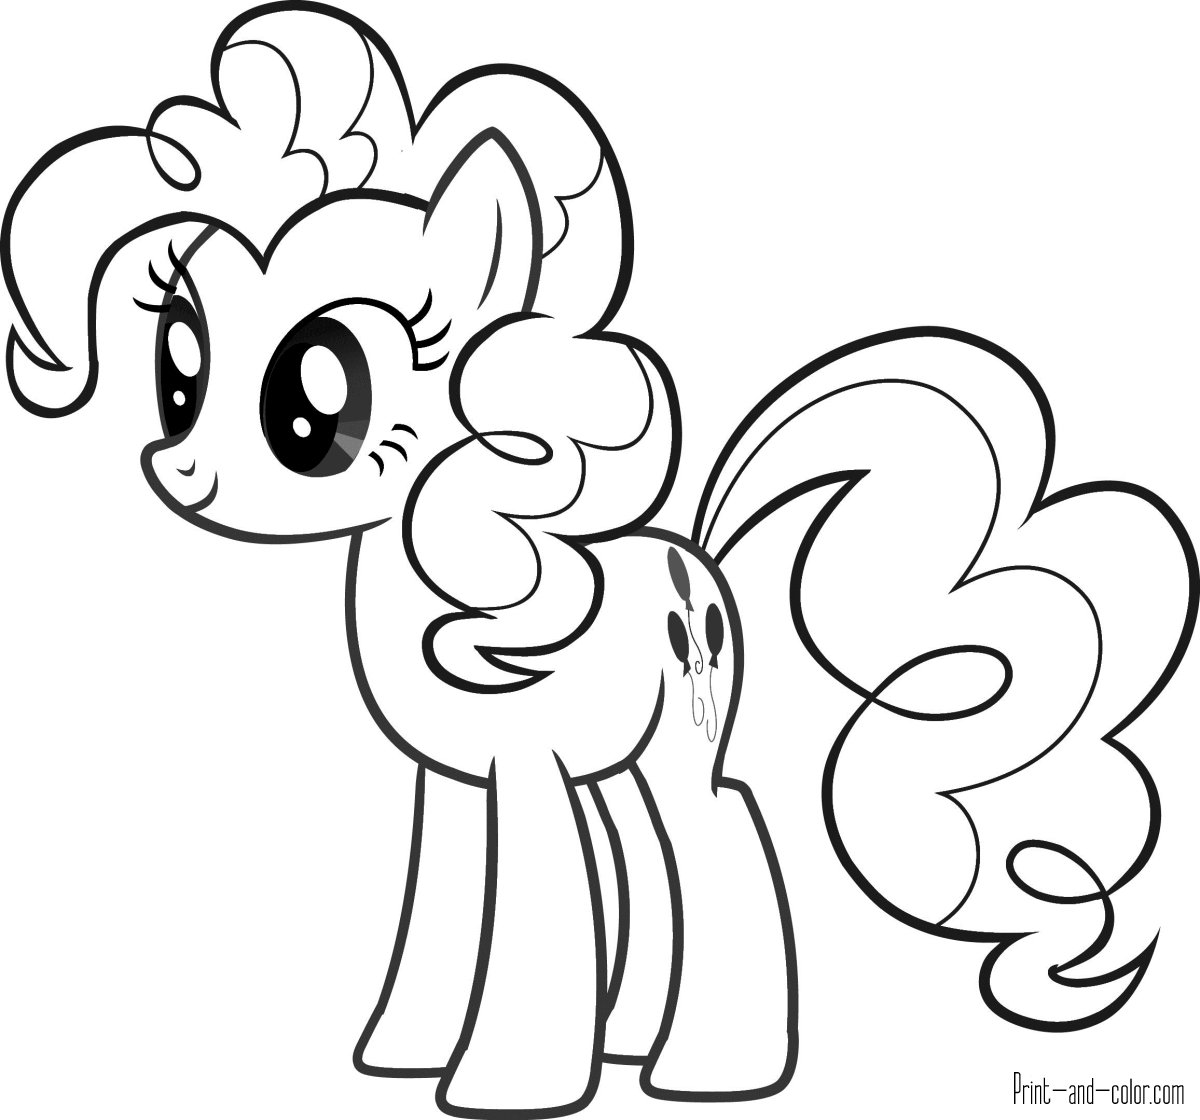 pictures of my little pony to color my little pony coloring pages print and colorcom little to my color of pictures pony